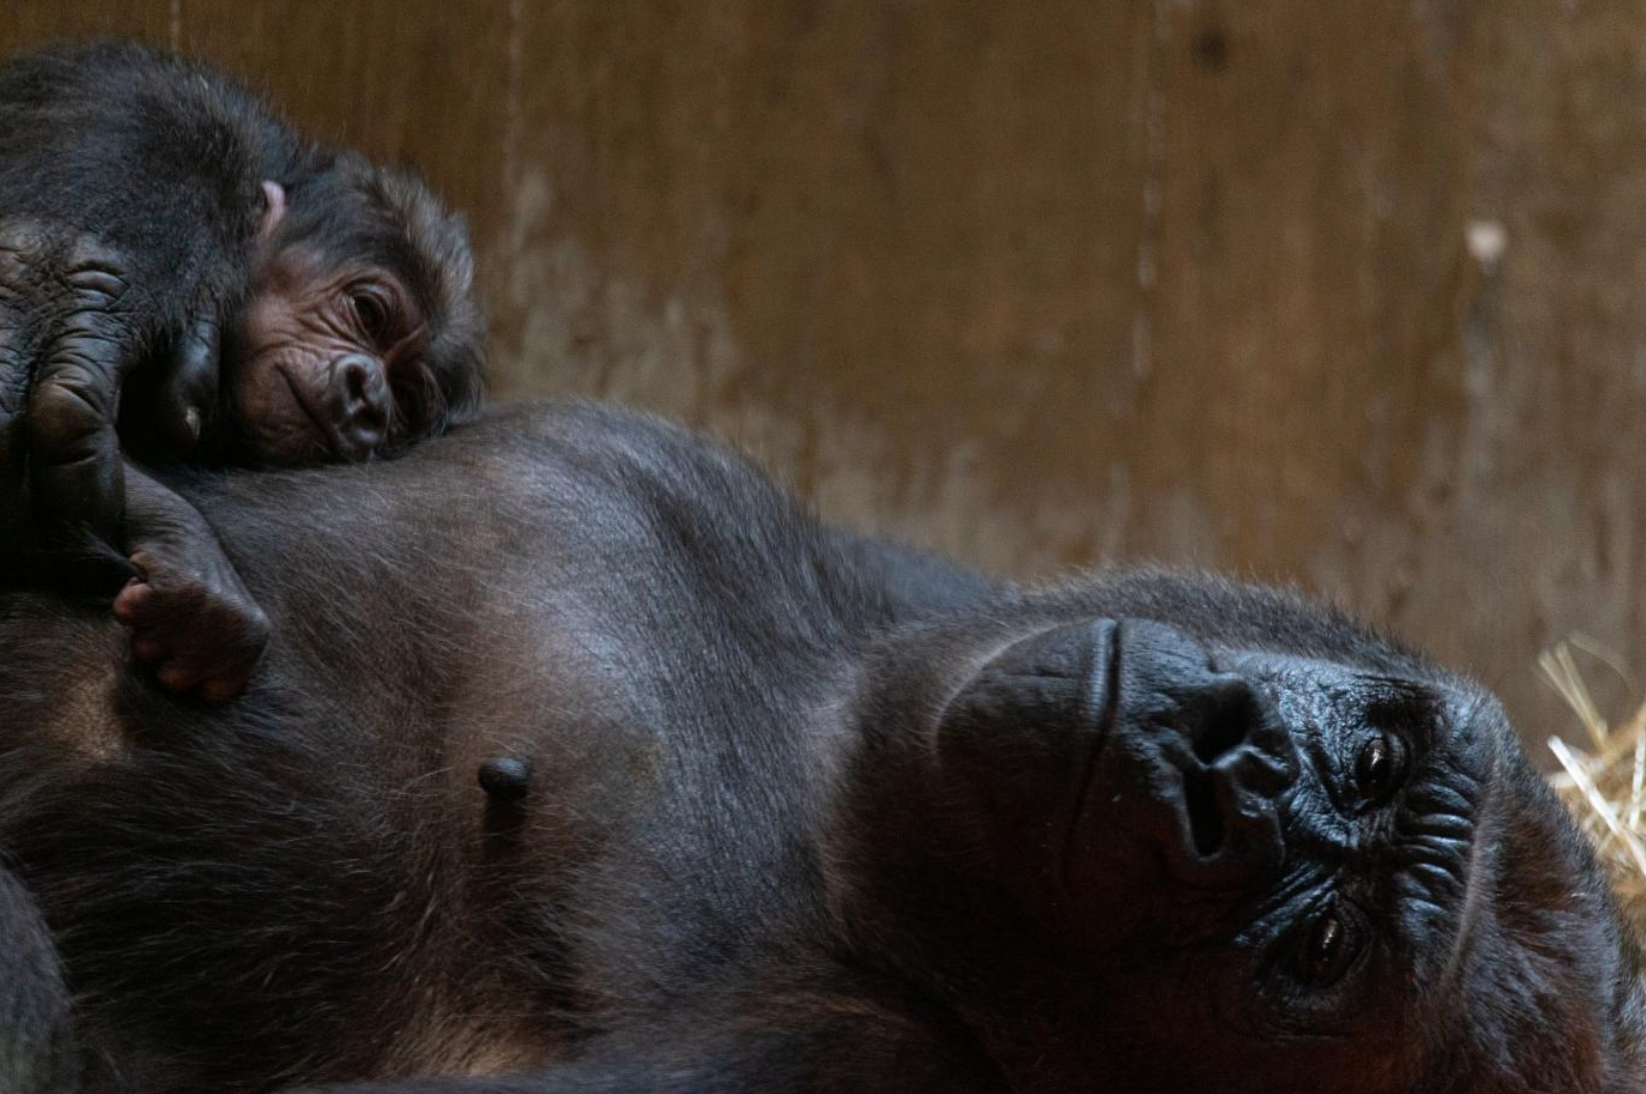 Moke, the newborn gorilla, poses for a picture with his mother.